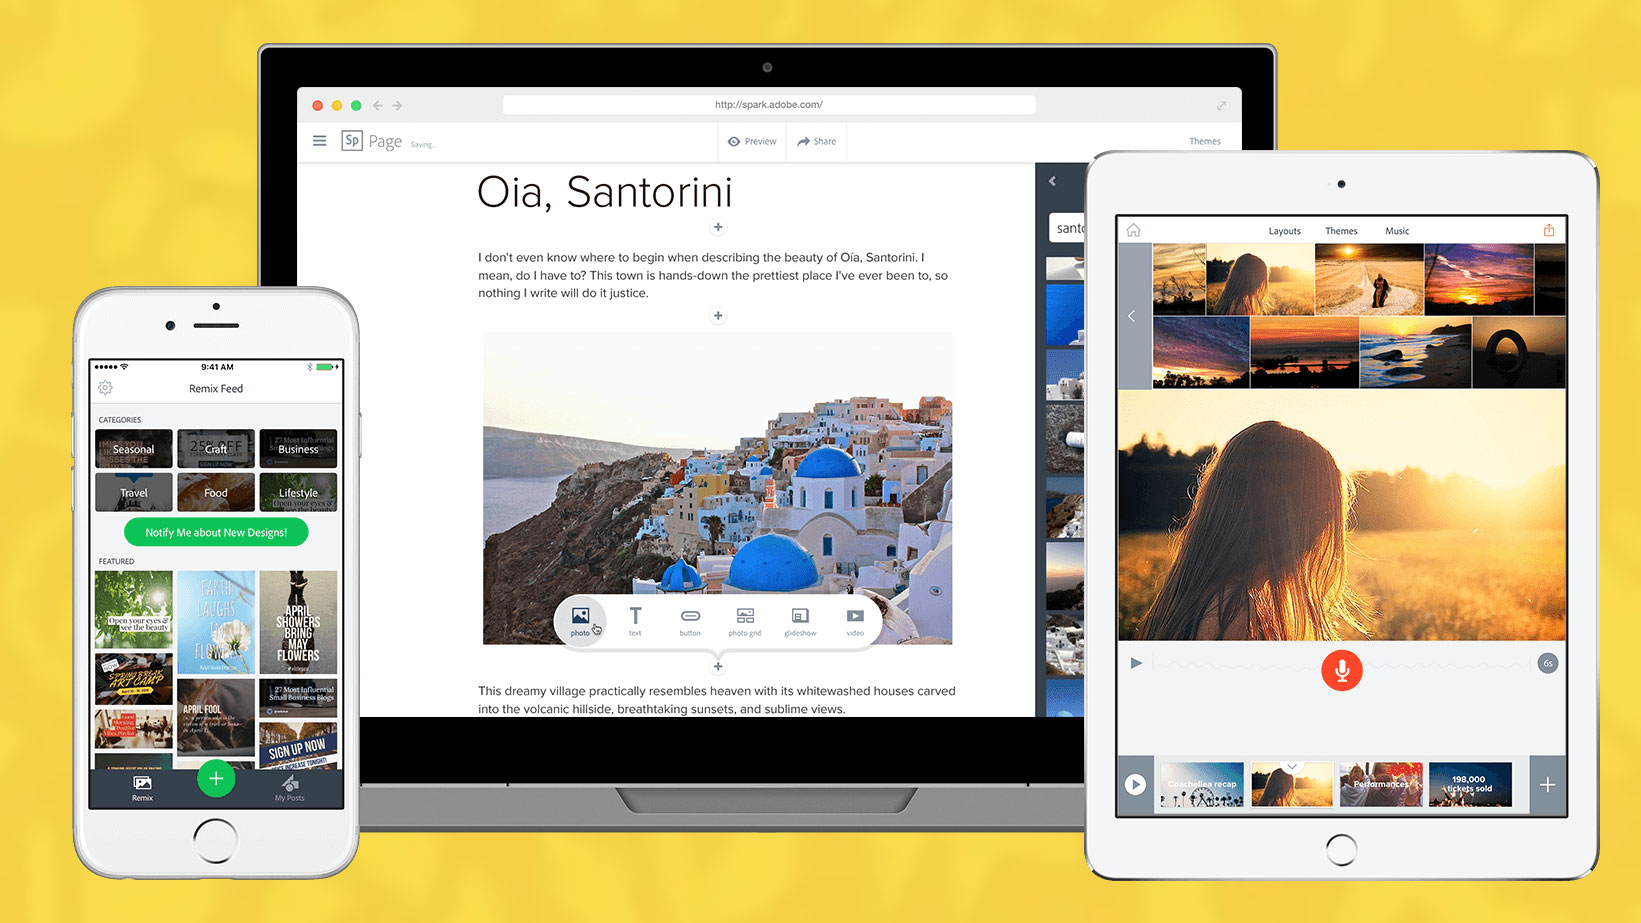 Download Adobe Spark: How to try Adobe Spark with a free trial or Creative Cloud